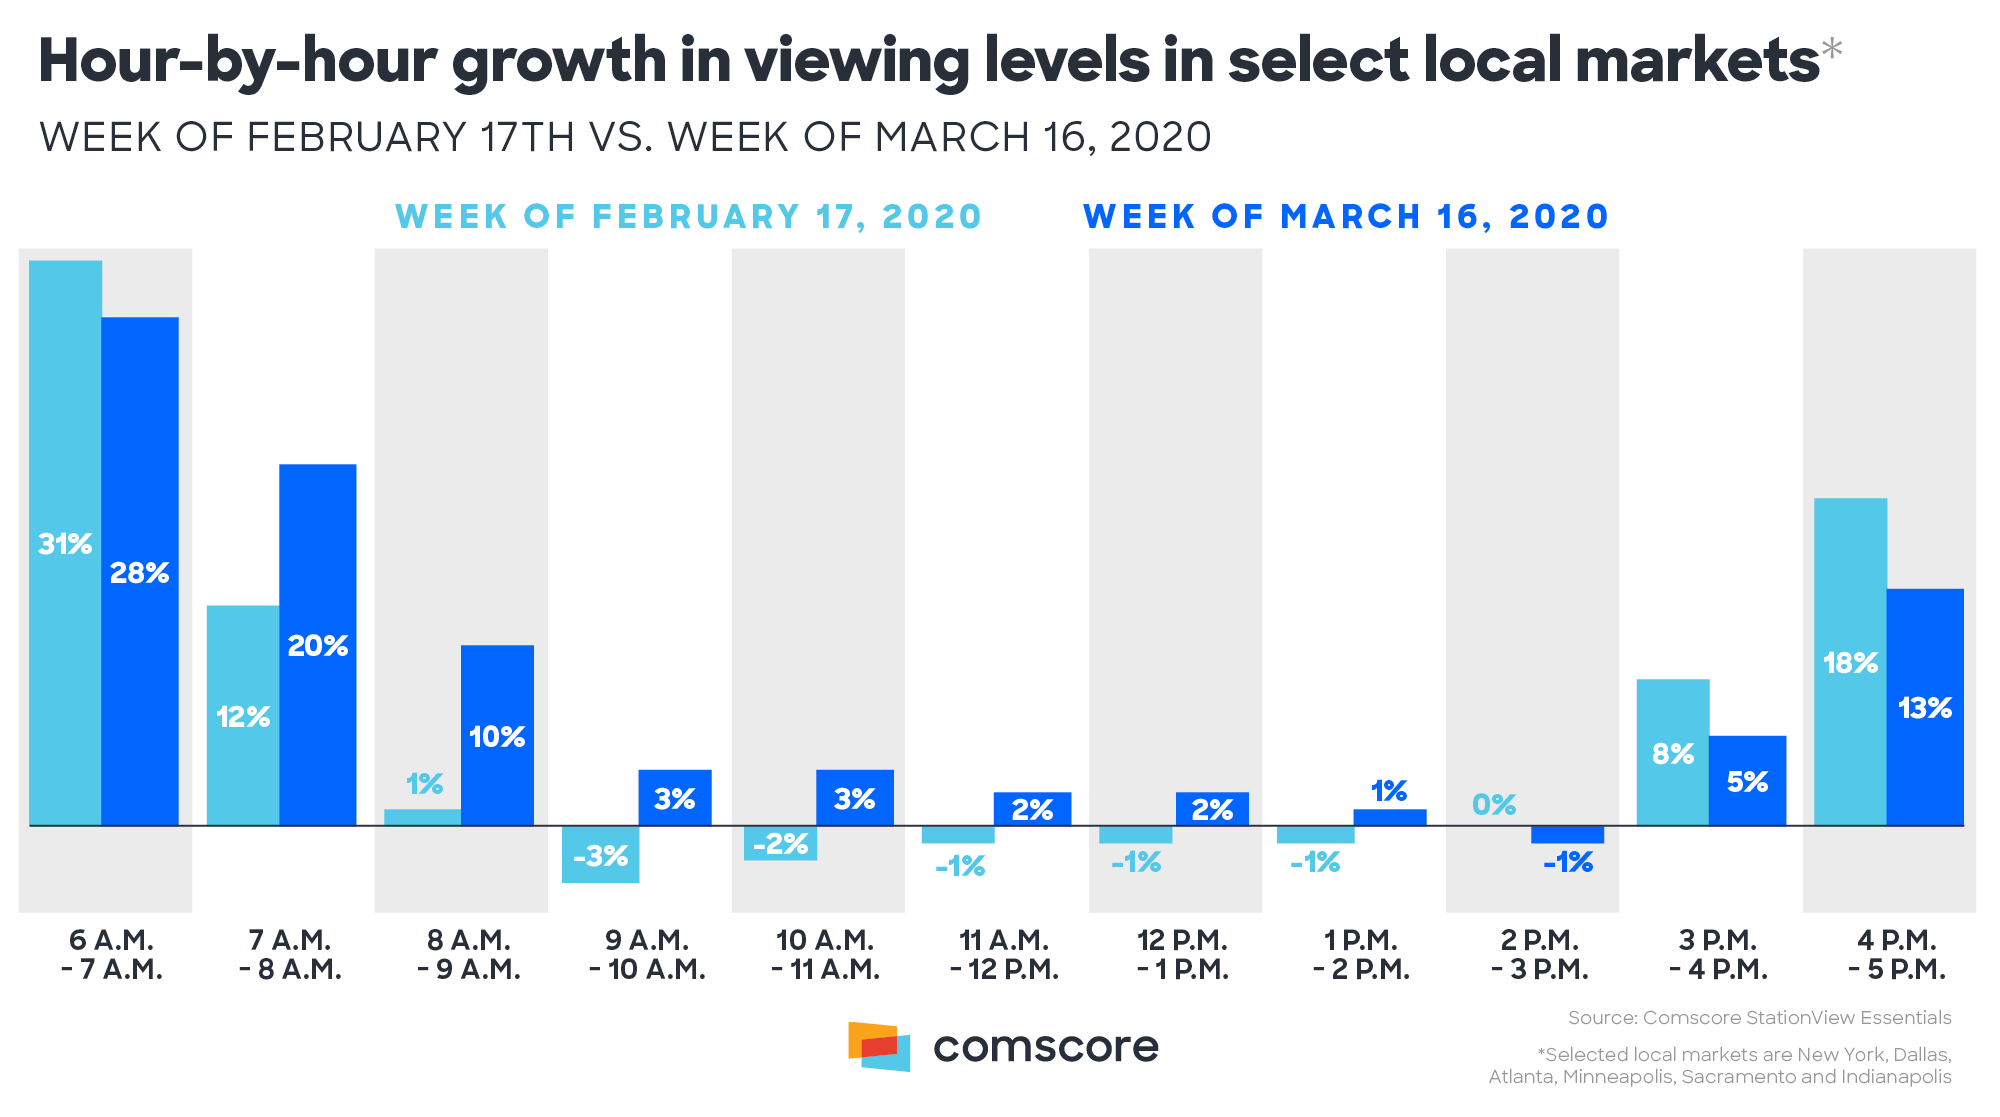 TV Viewing levels growth hour-by-hour